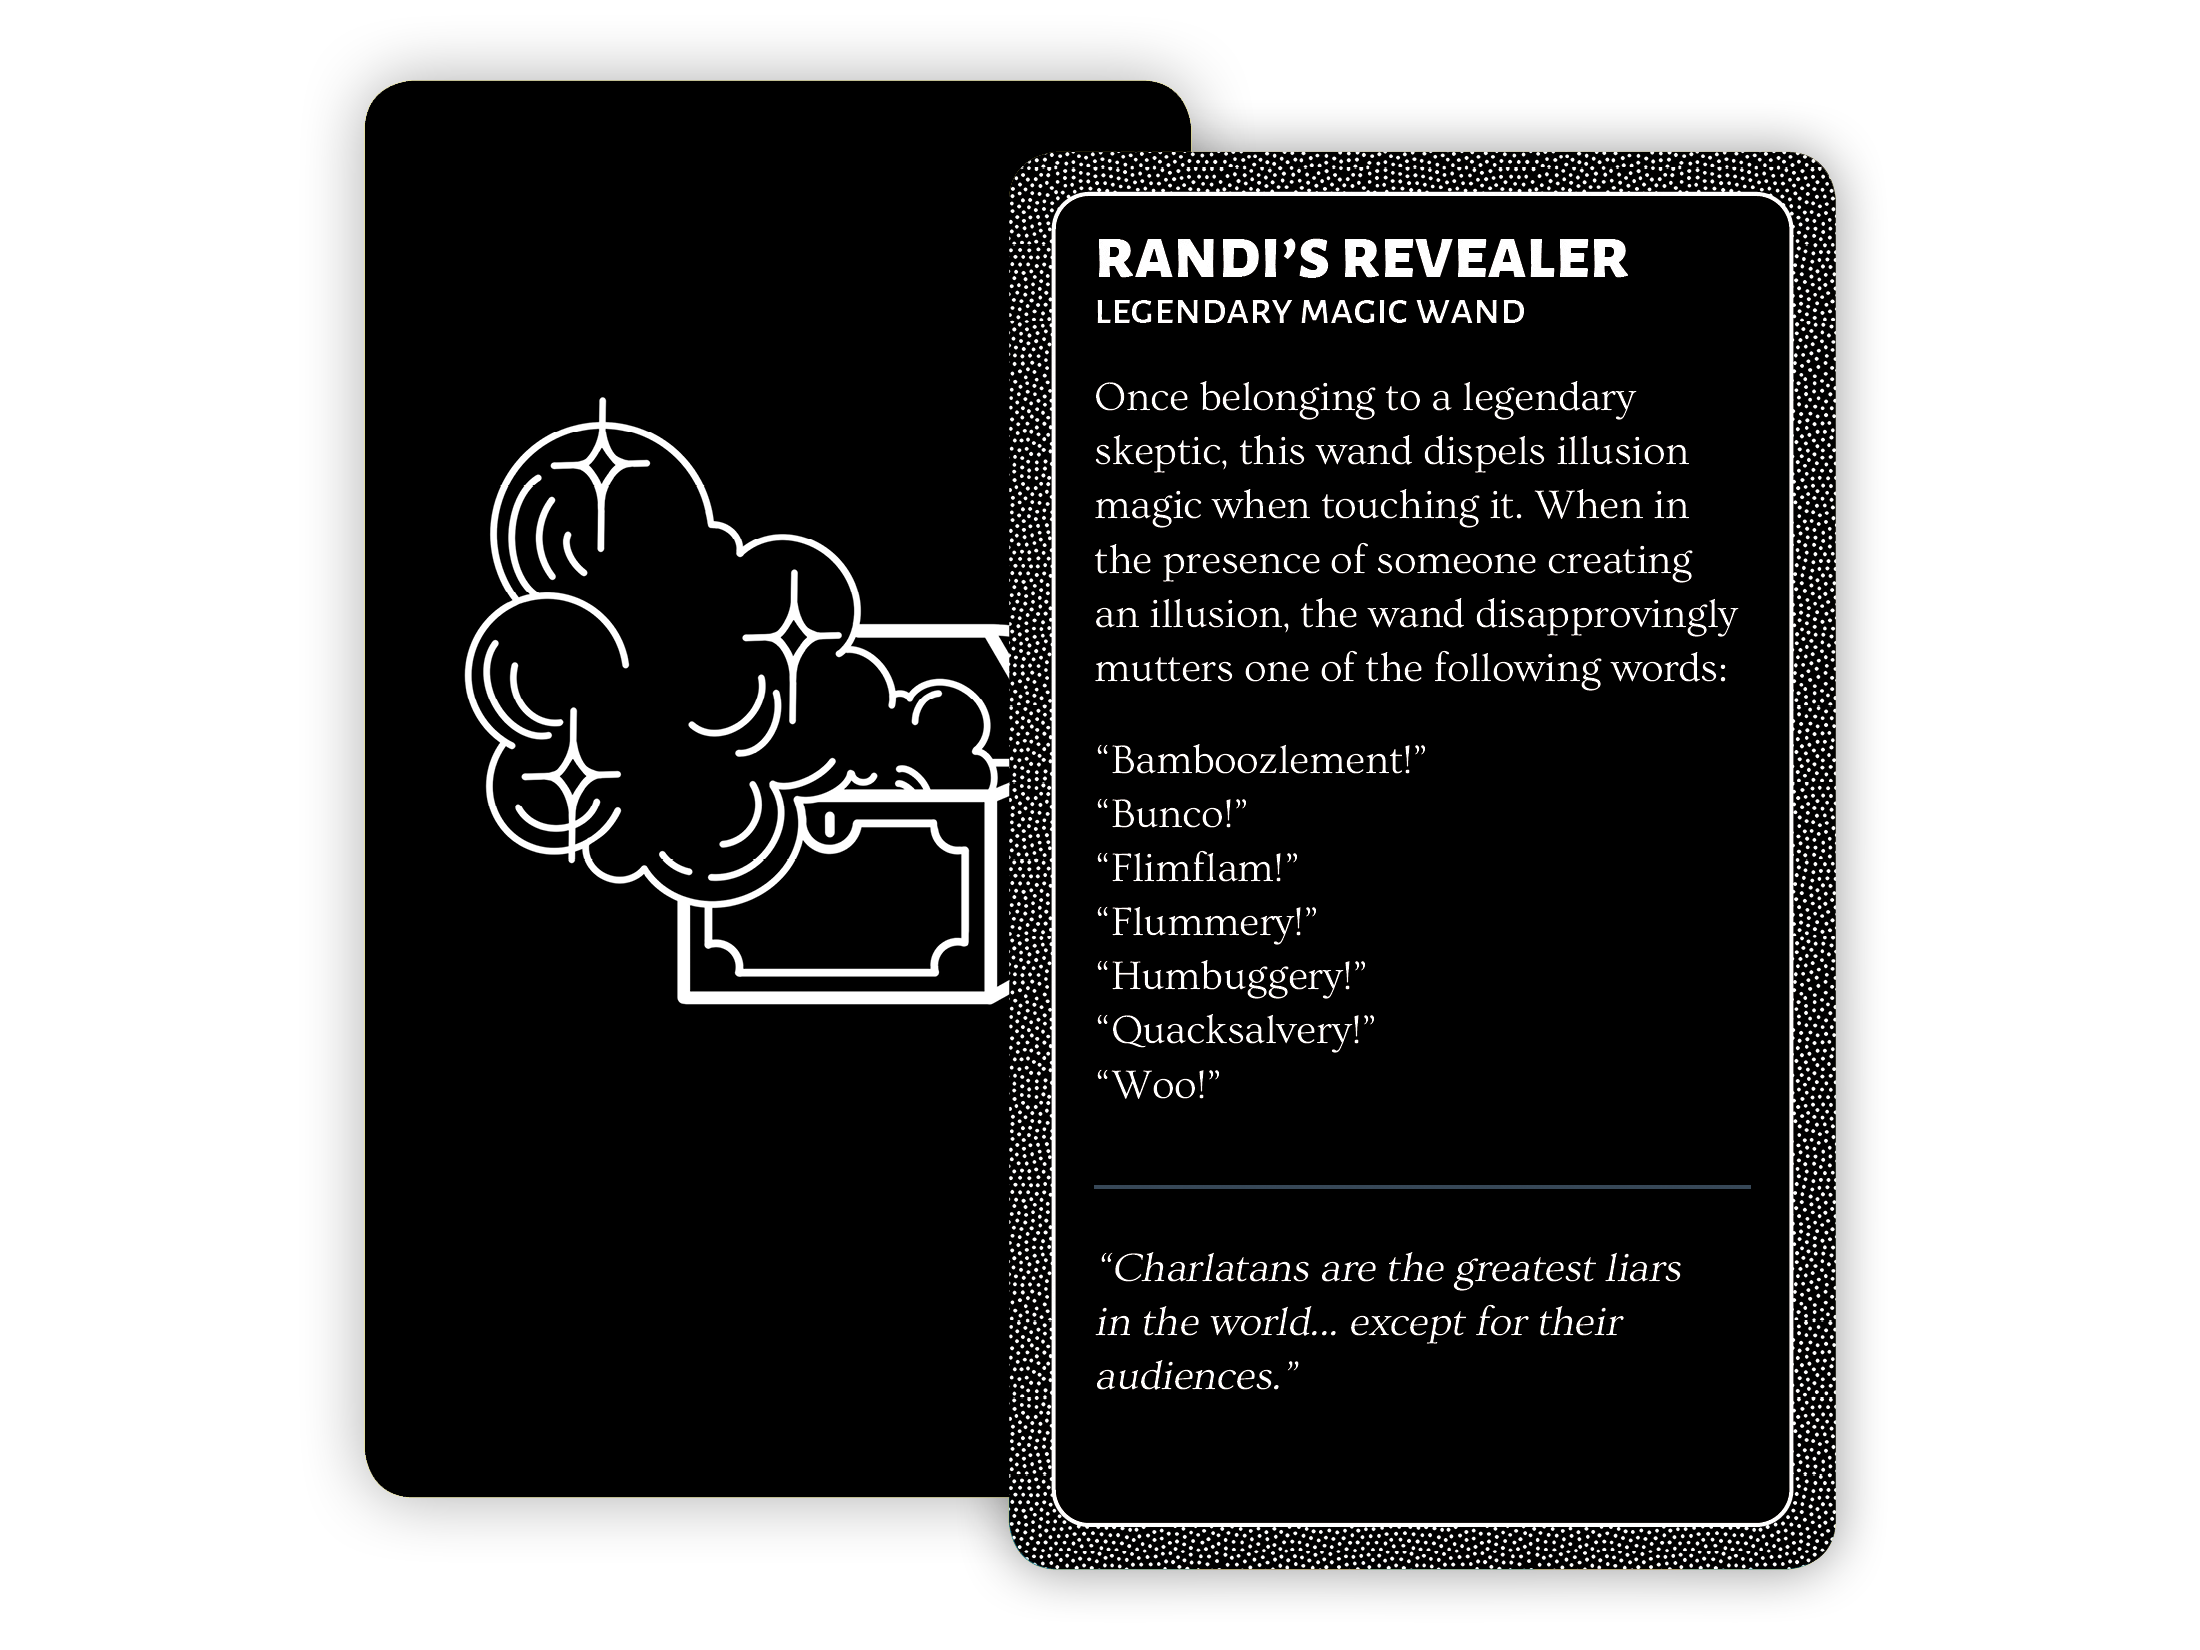 Randi's Revealer: a magic wand once belonging to a legendary skeptic that can be used to dispel illusion magic.